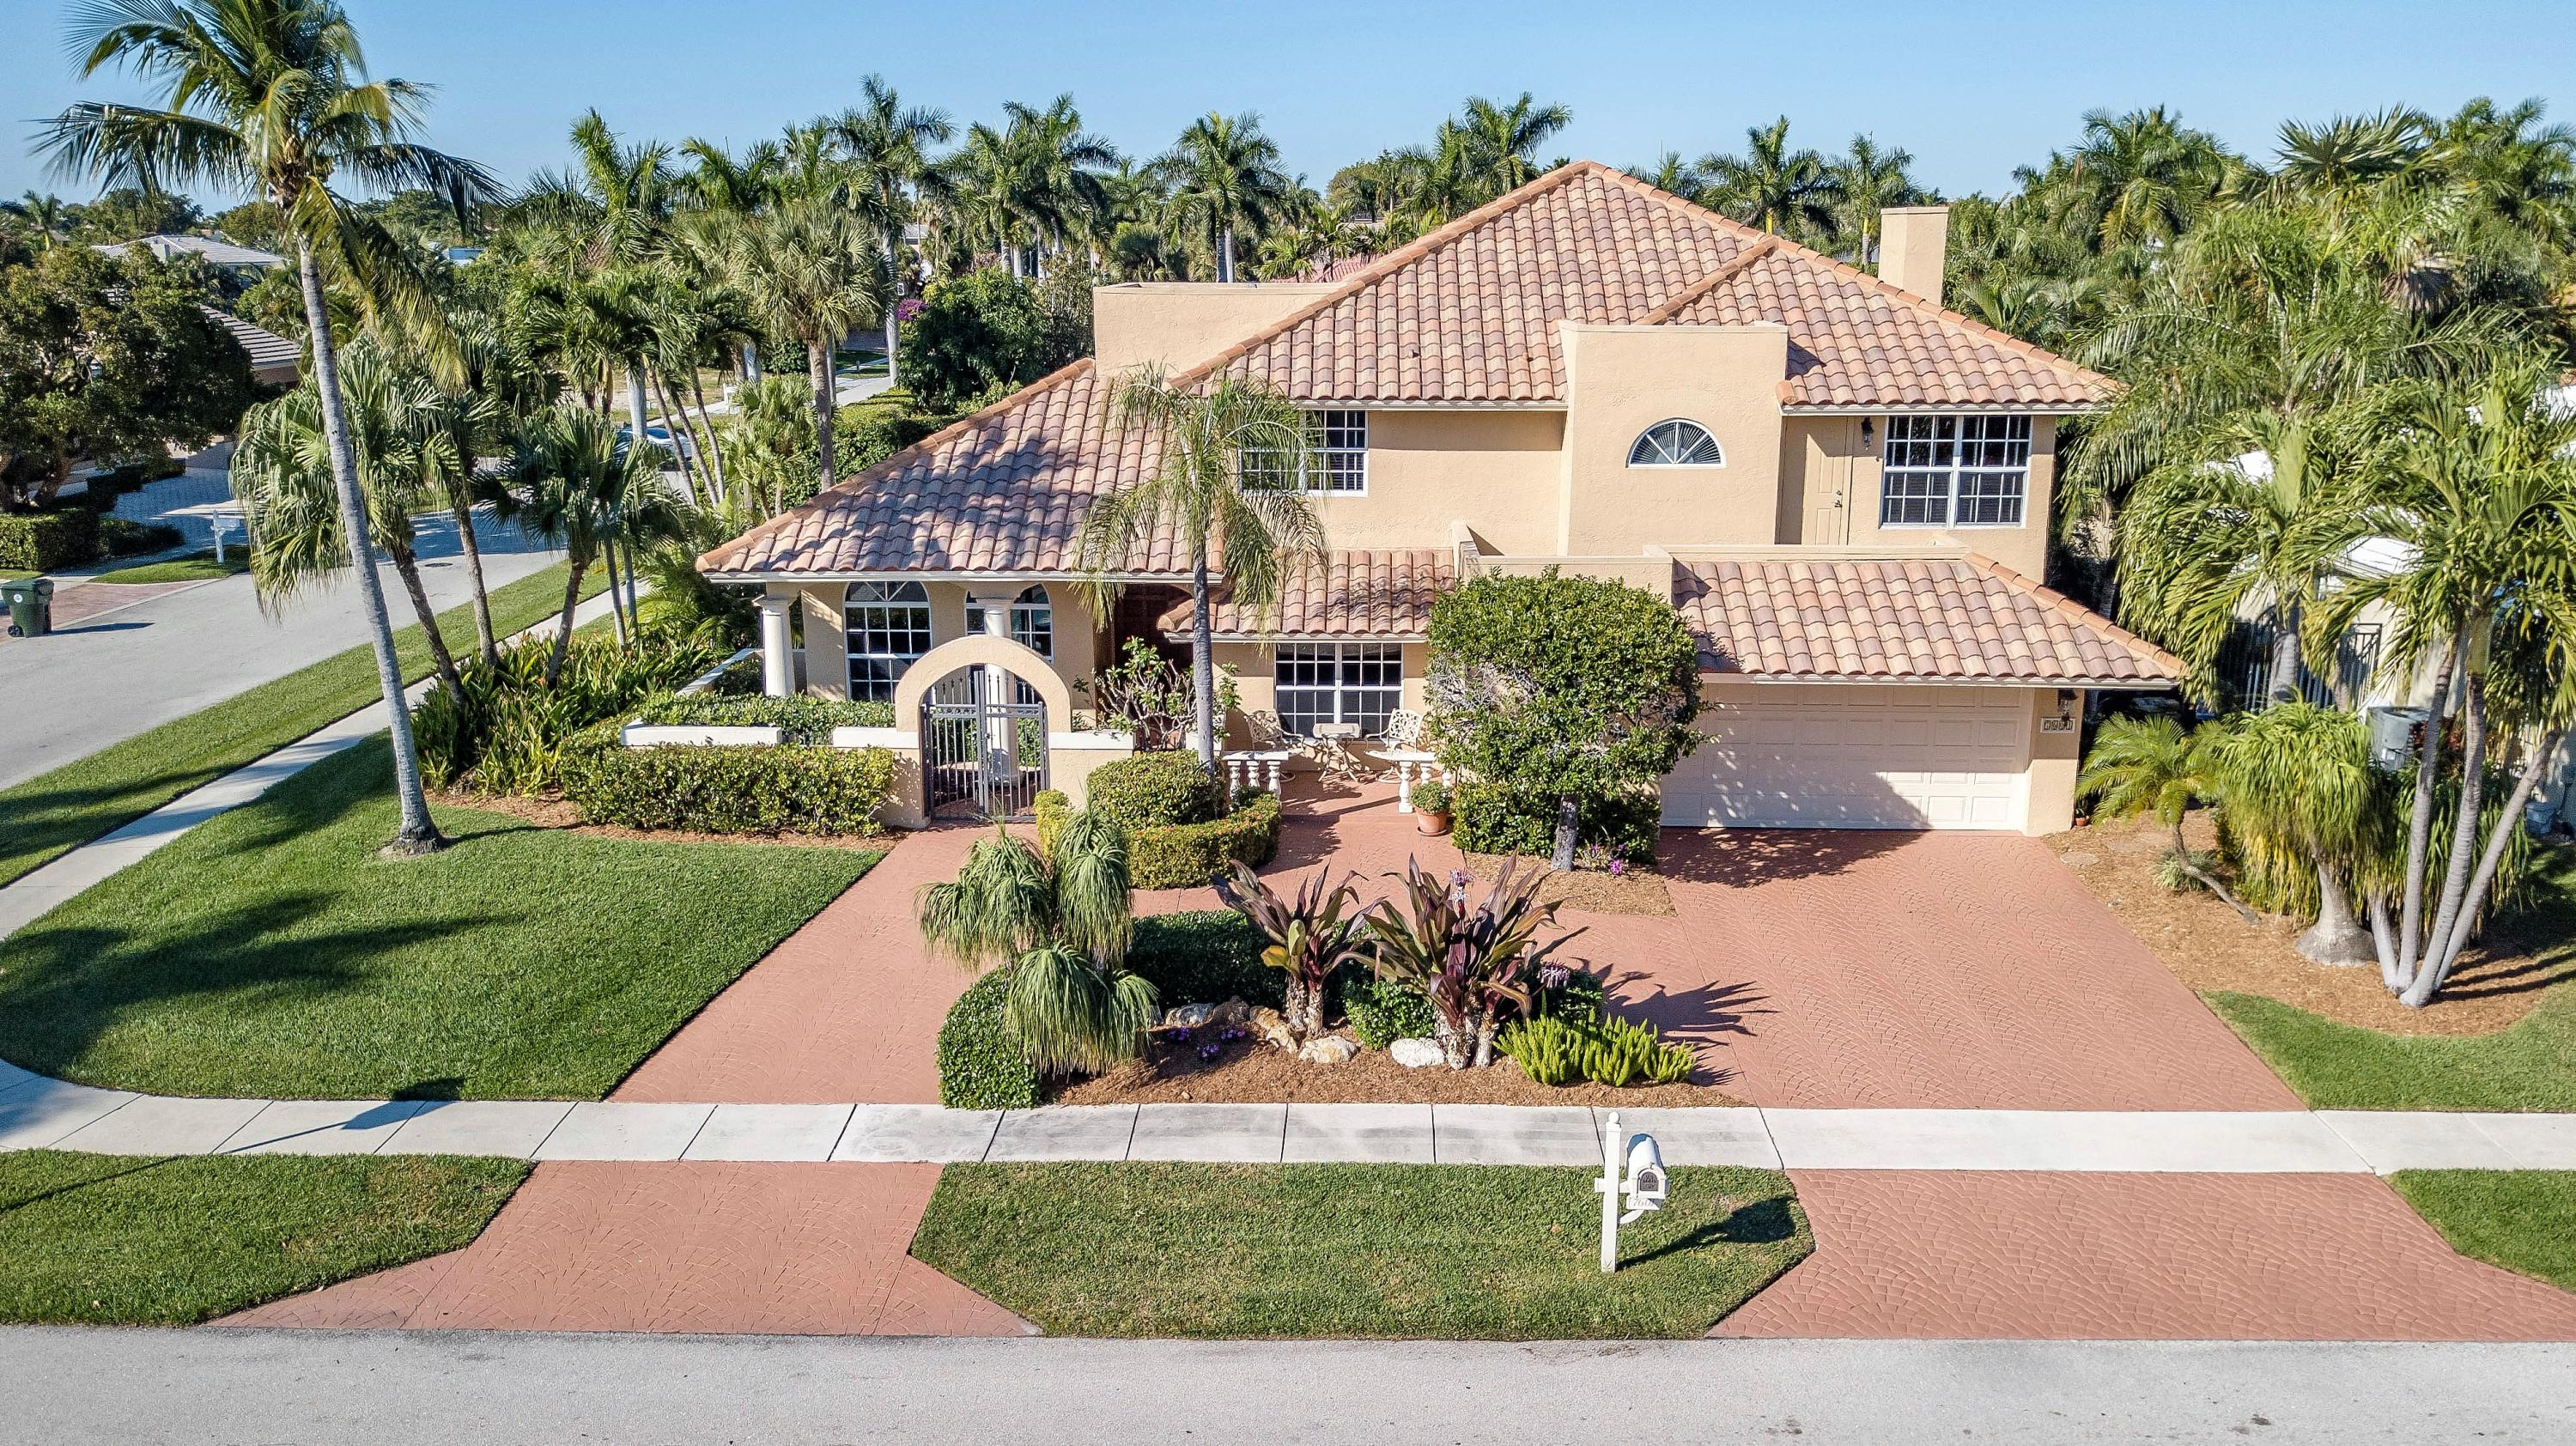 7601 Spanish Trail Court, Boca Raton, Florida 33487, 4 Bedrooms Bedrooms, ,3.1 BathroomsBathrooms,Single Family,For Sale,Boca Bay Colony / Walkers Cay,Spanish Trail,RX-10494847